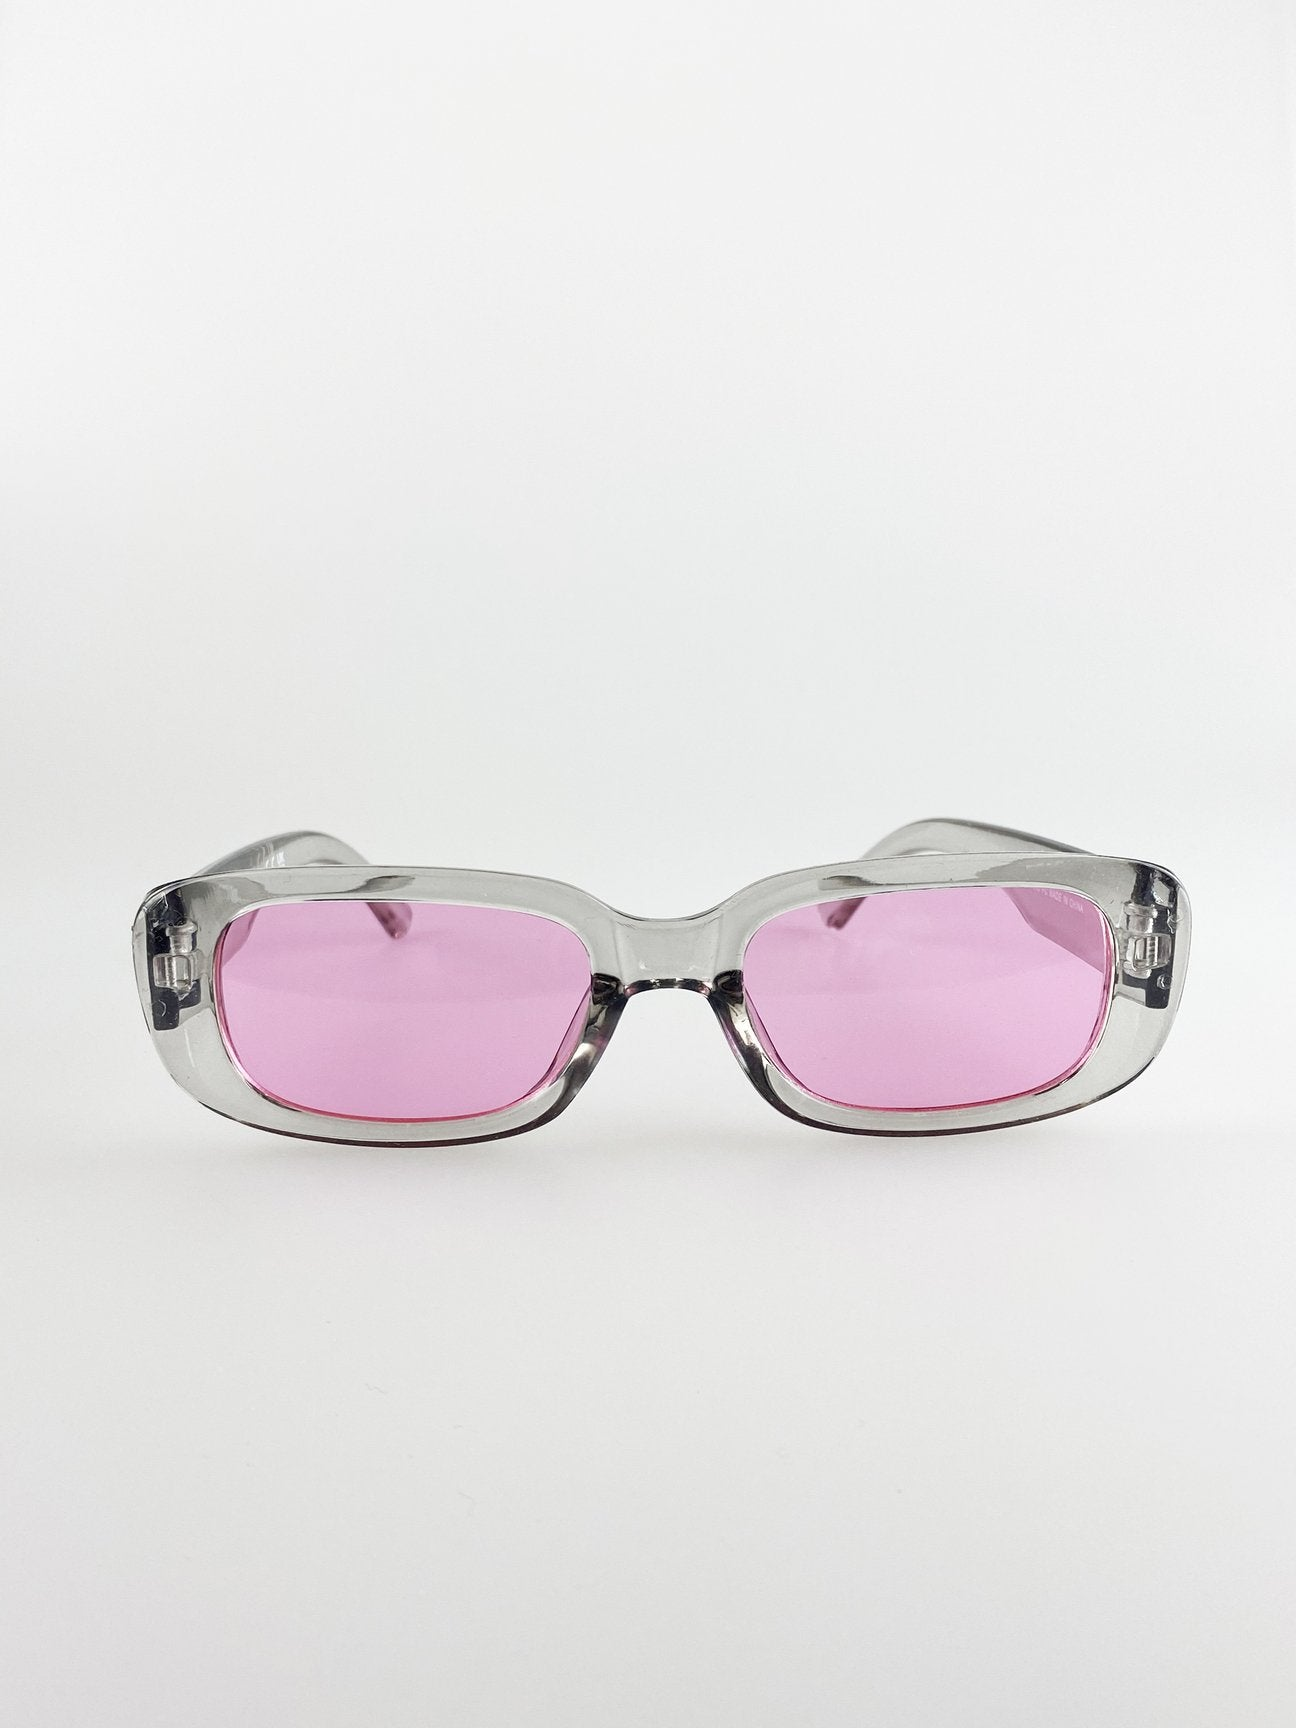 Retro Rectangle Sunglasses With Pink Lenses and Light Gray Frame